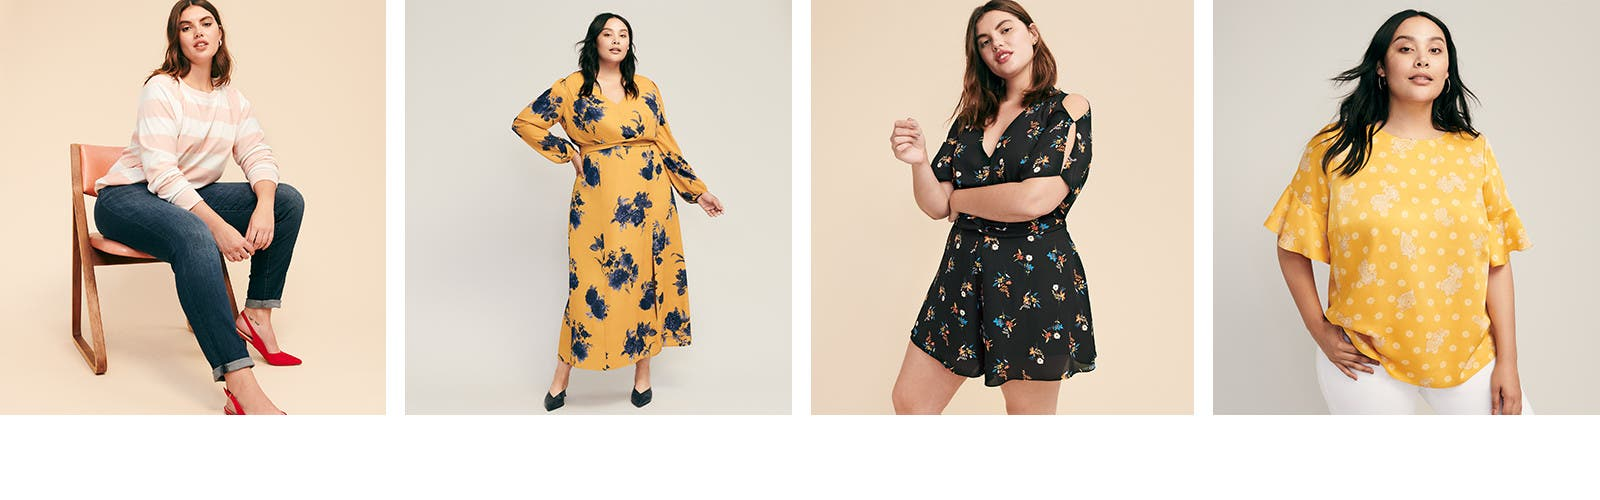 Plus-Size Clothing